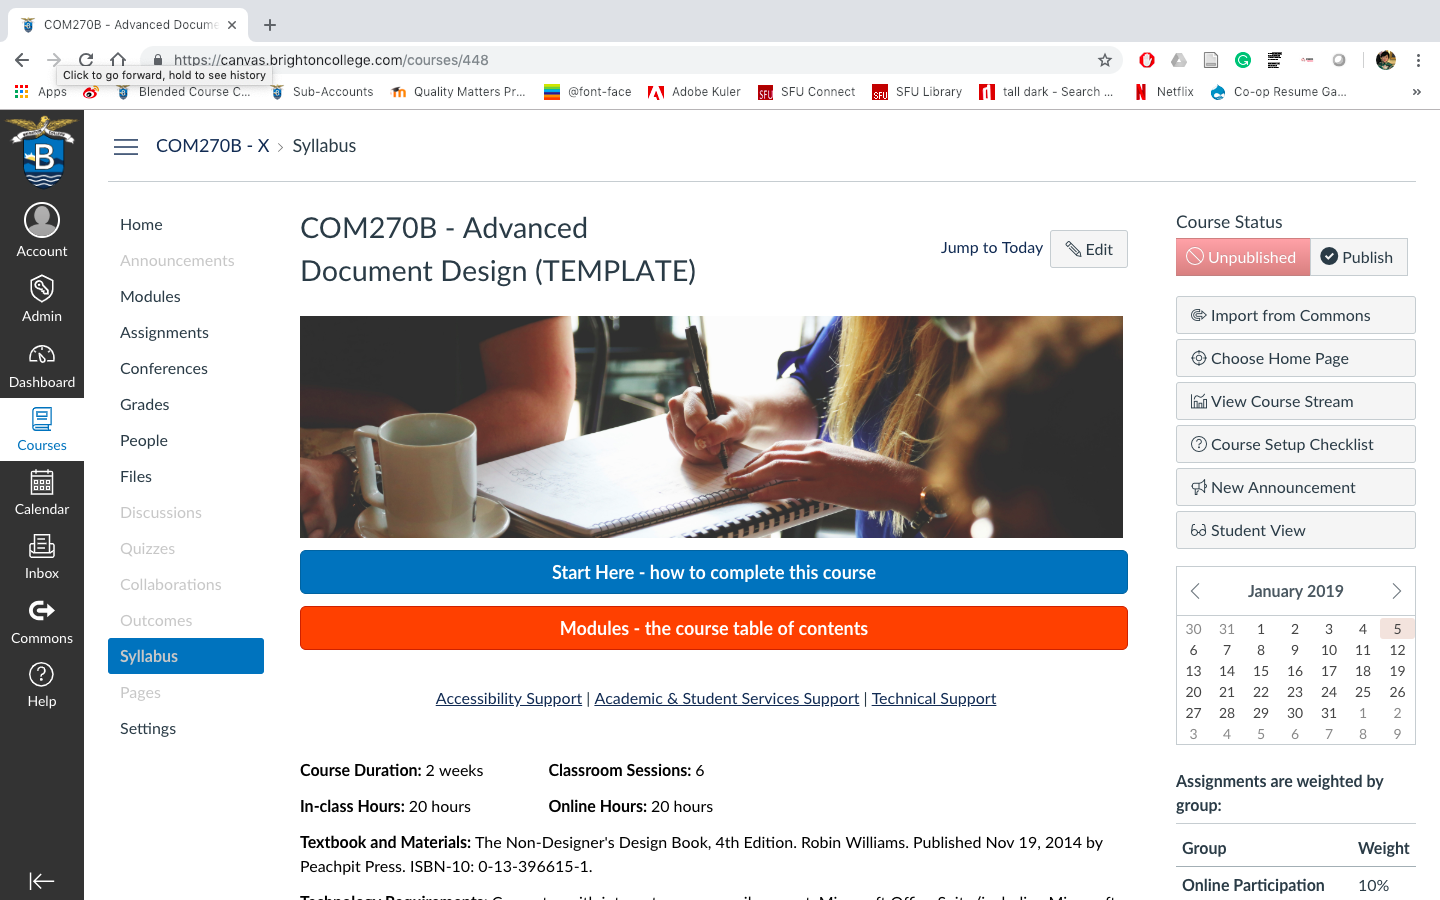 COM270B Advanced Document Design (Blended)